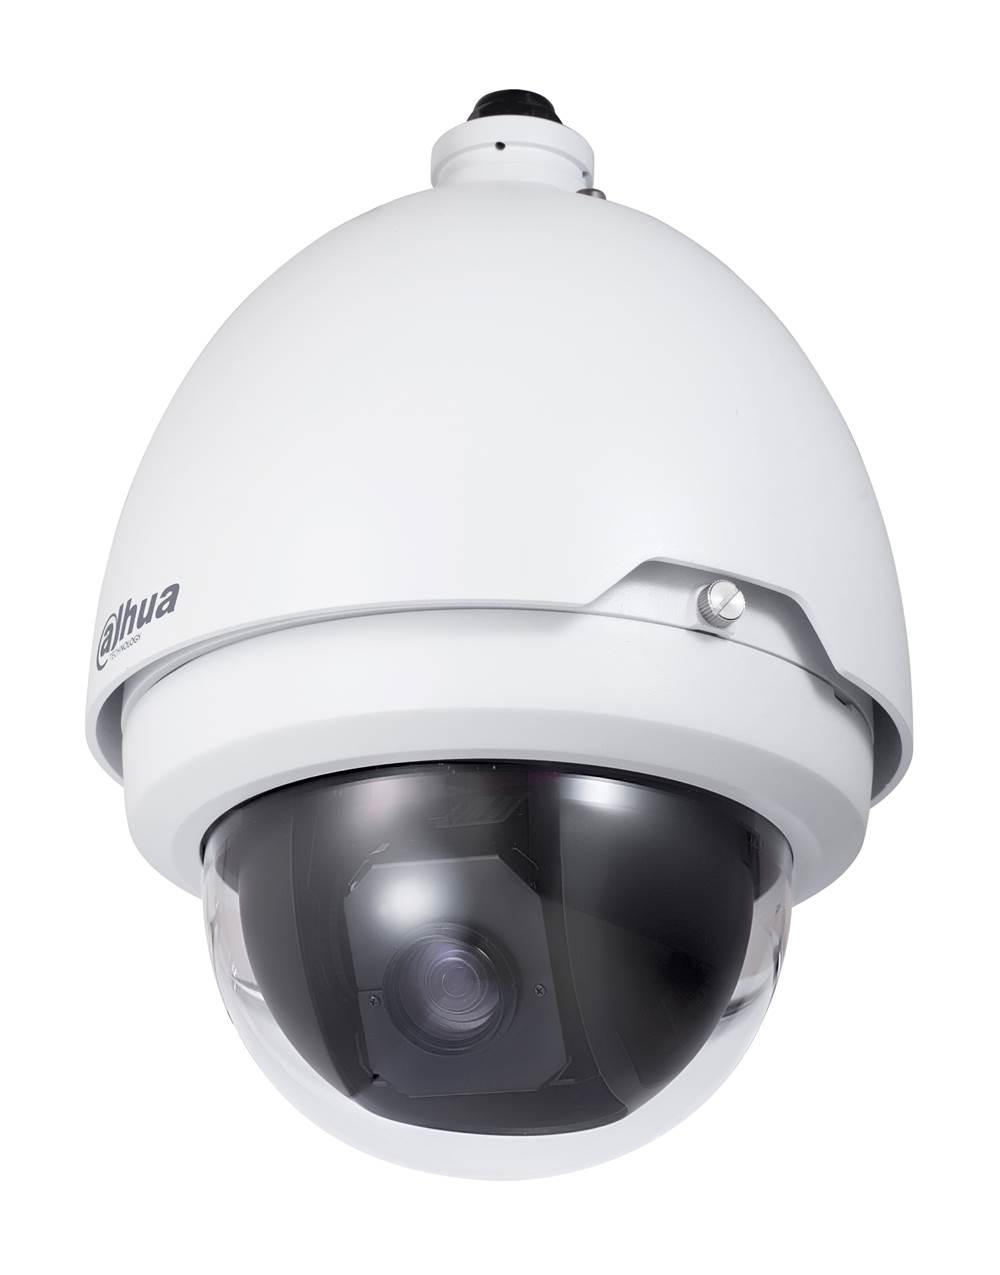 กล้องวงจรปิด Dahua SD63120I-HC HDCVI PTZ Dome Camera 1MP